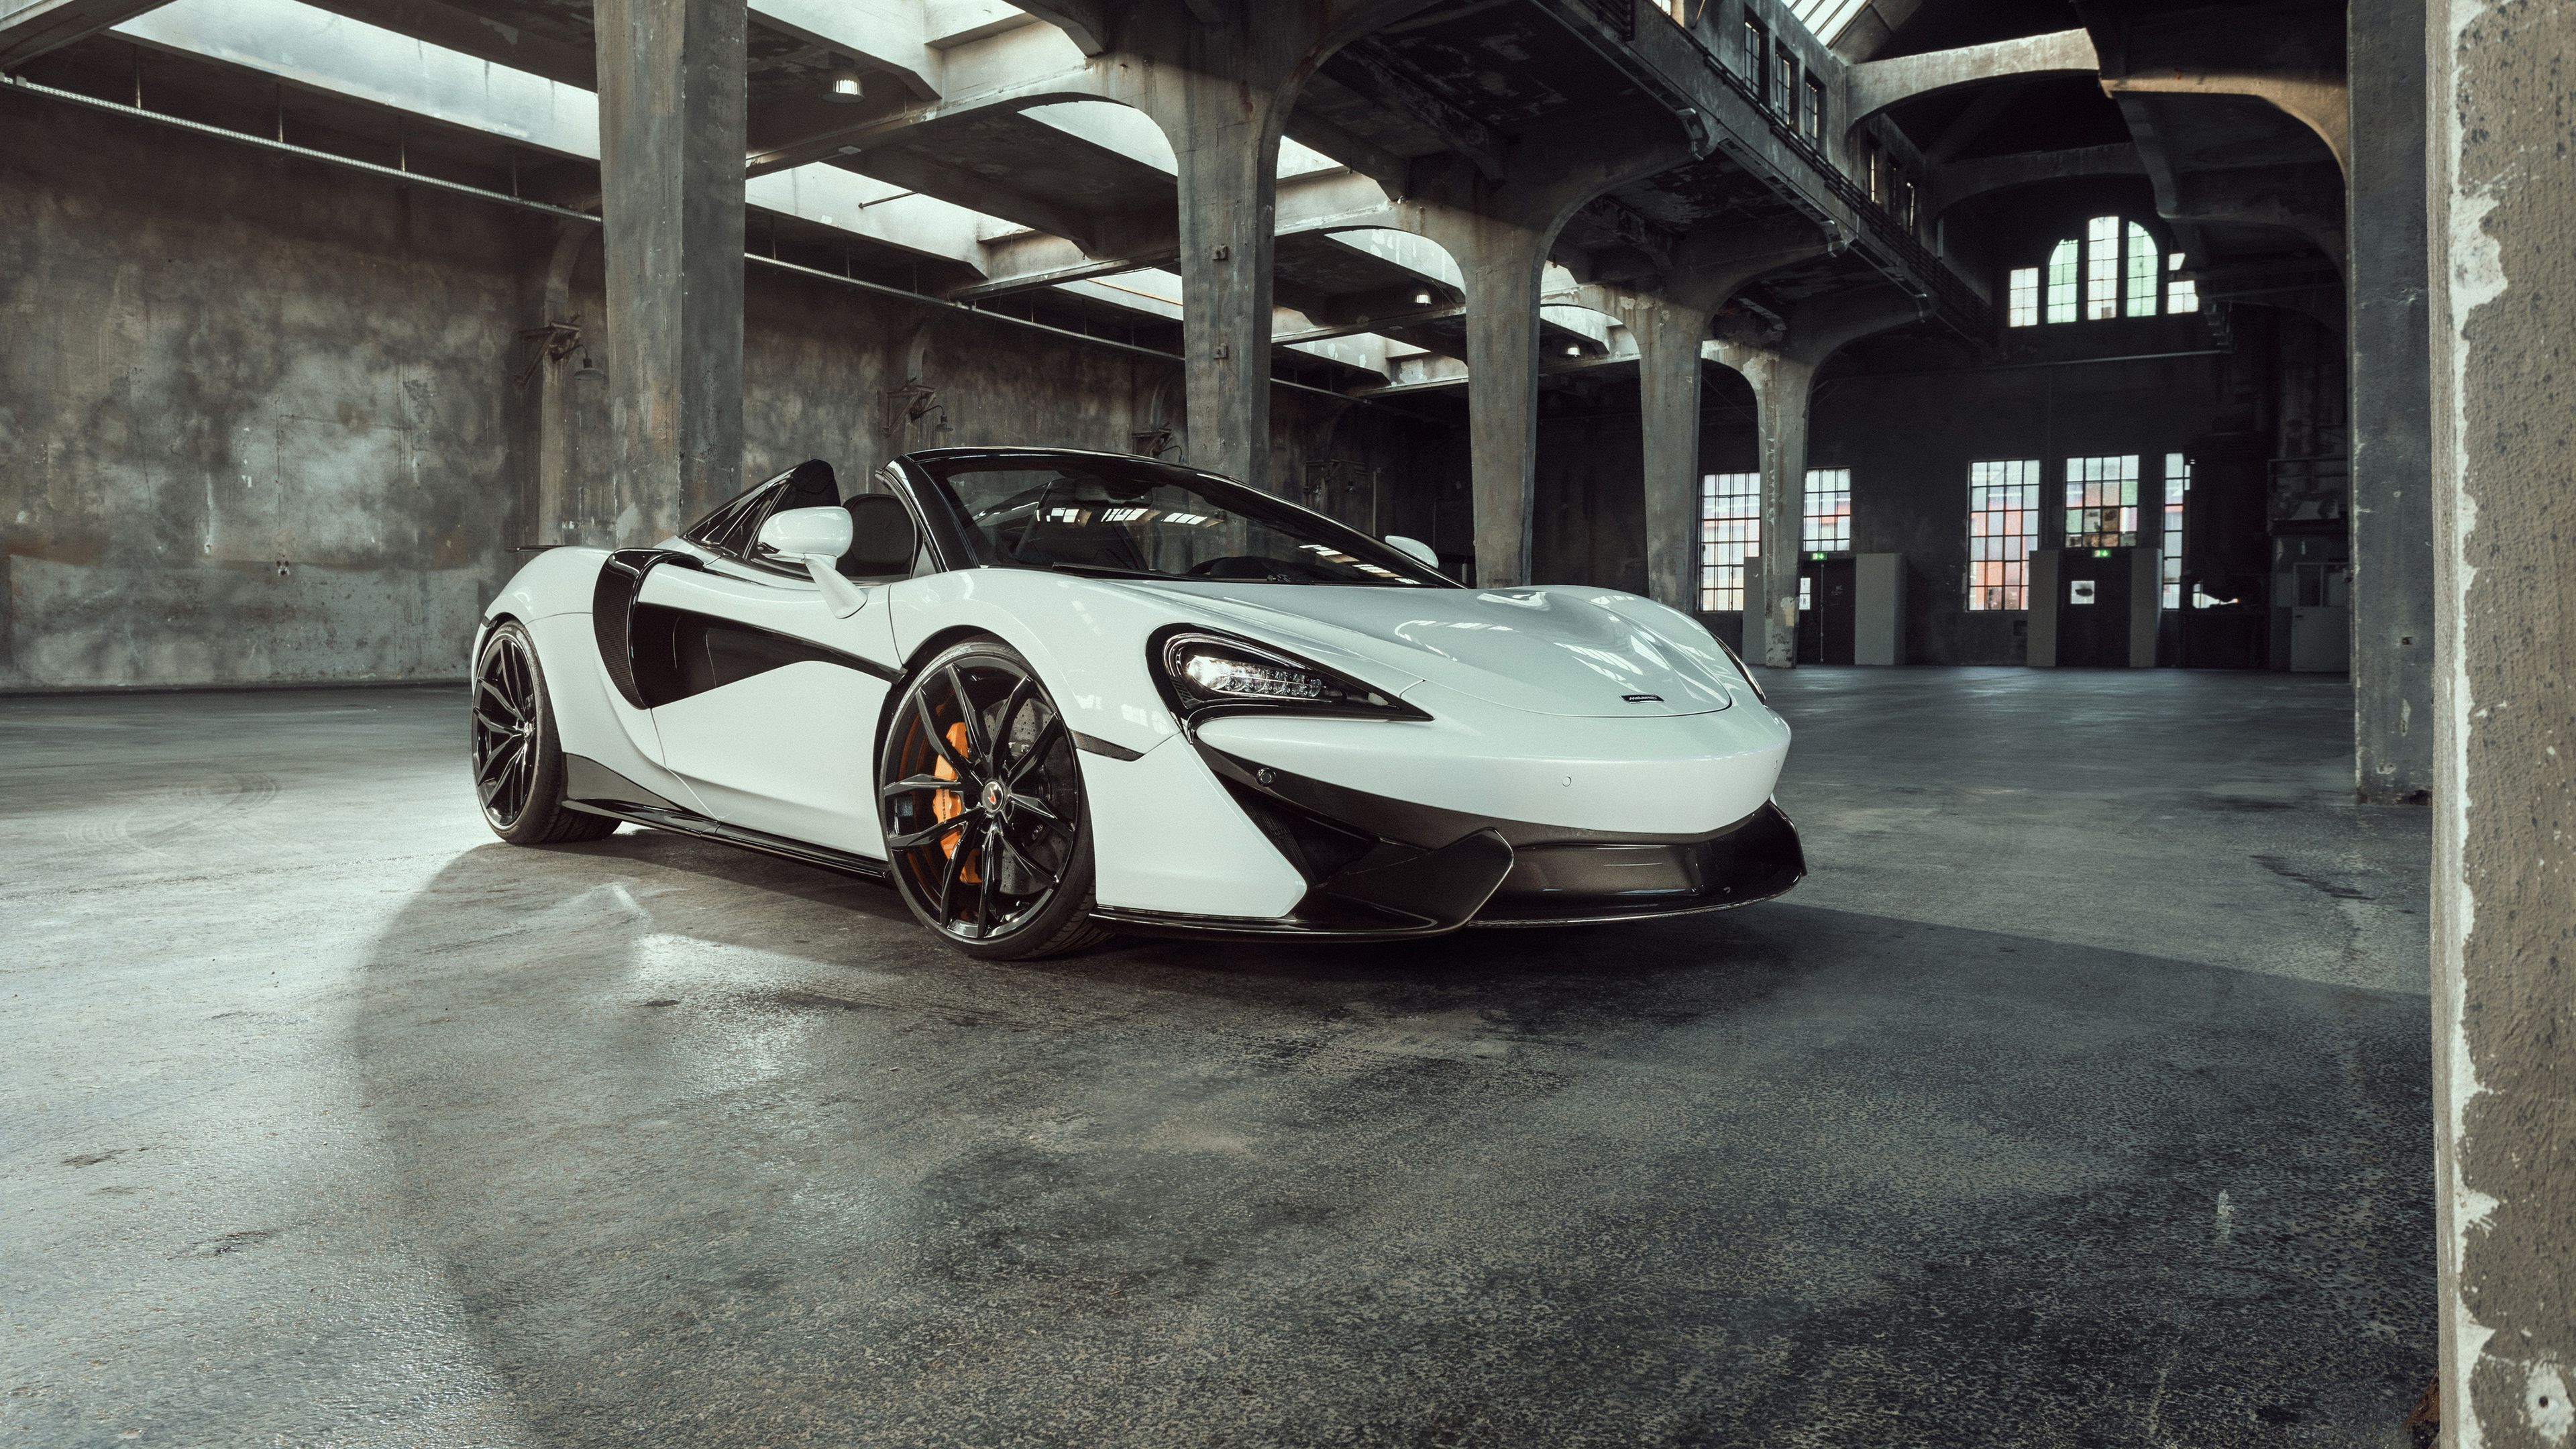 Wallpaper 4k Novitec Mclaren 570s Spider 2018 2018 Cars Wallpapers